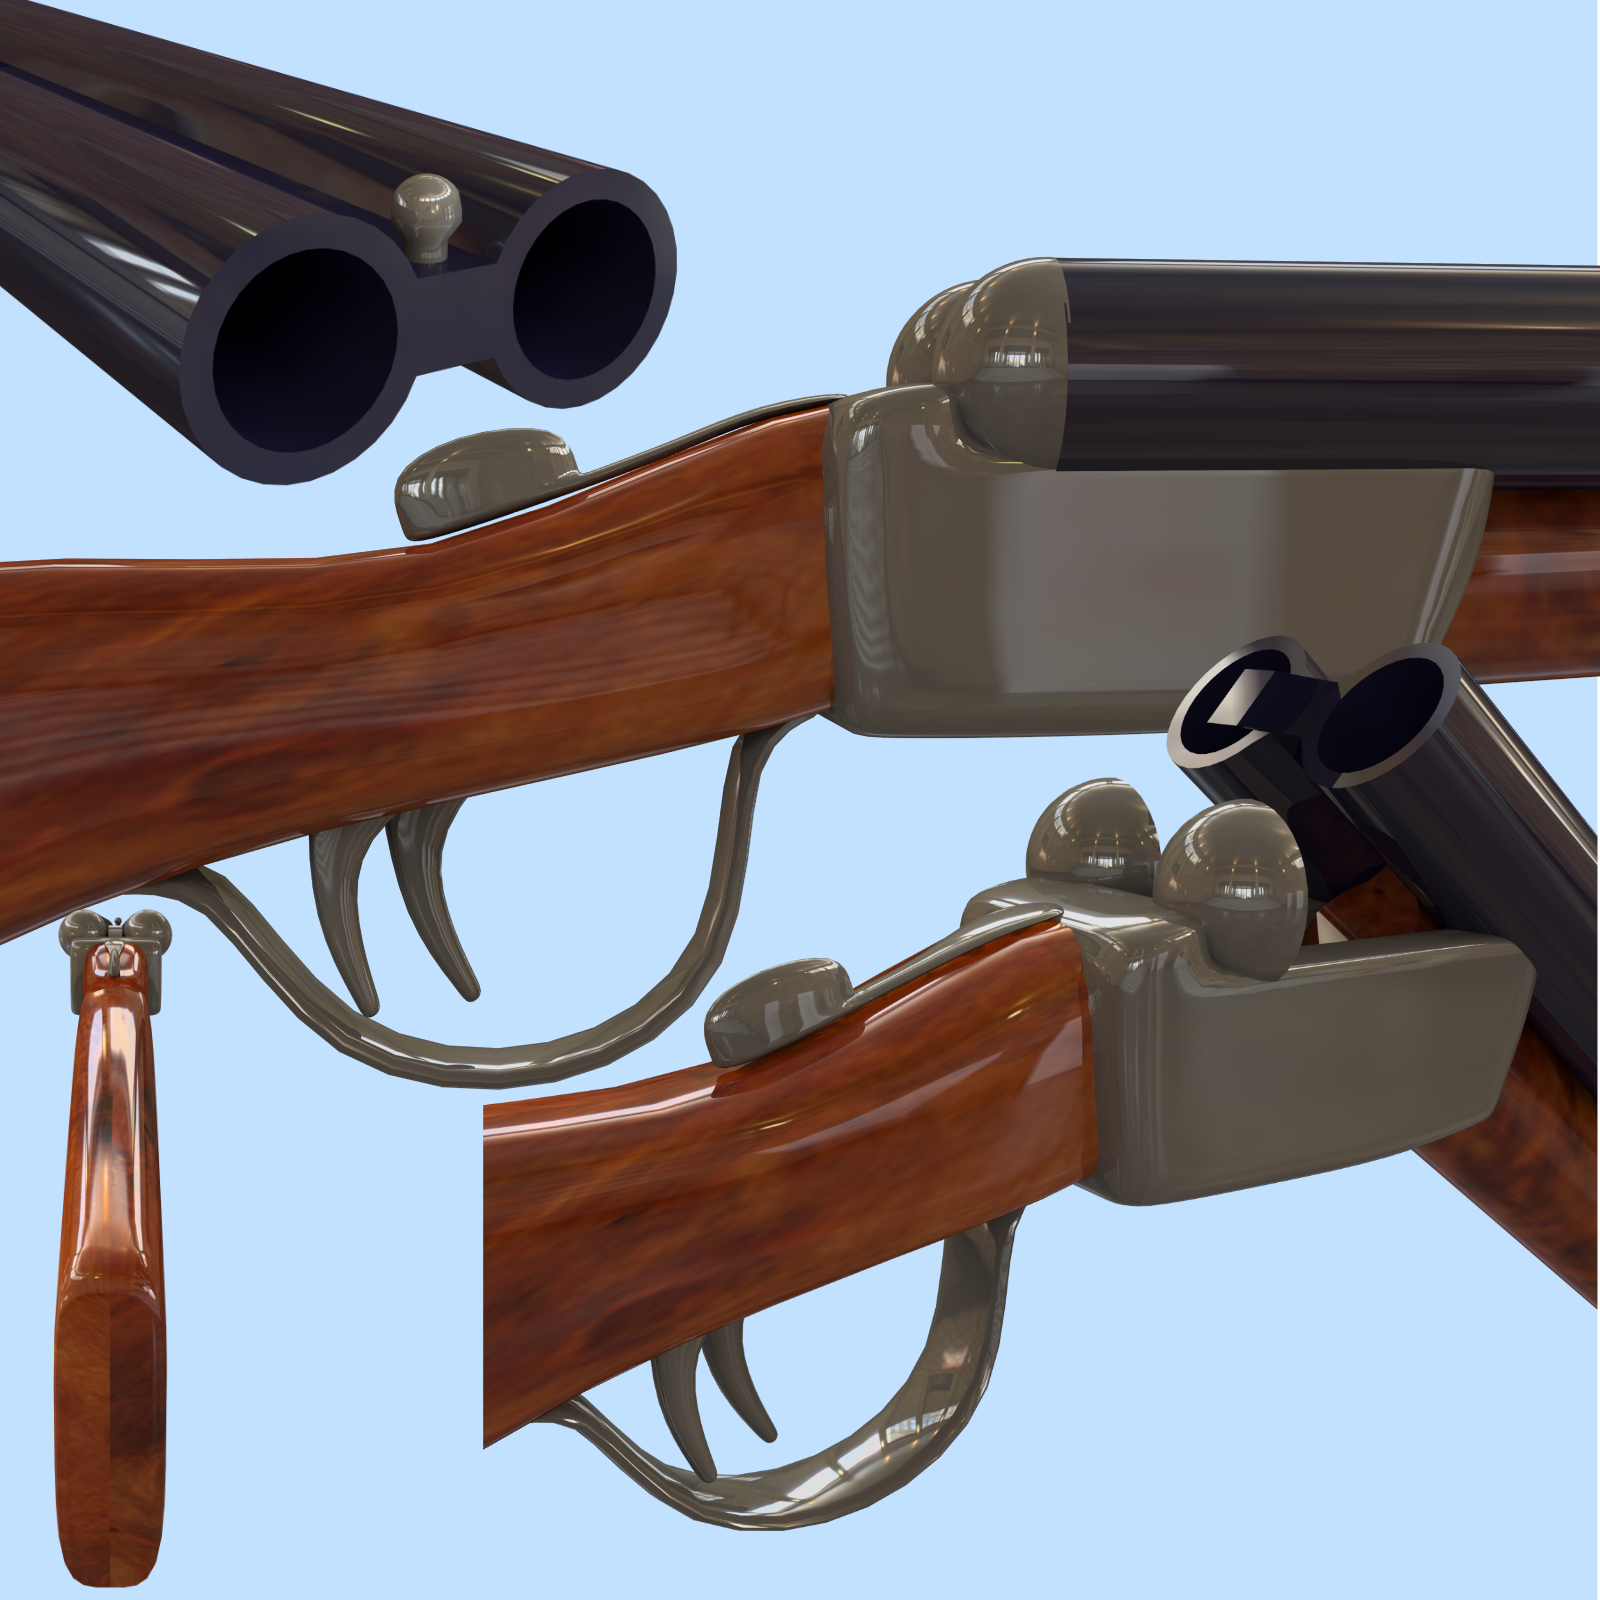 shotgun fbx and obj 3d model fbx 217807